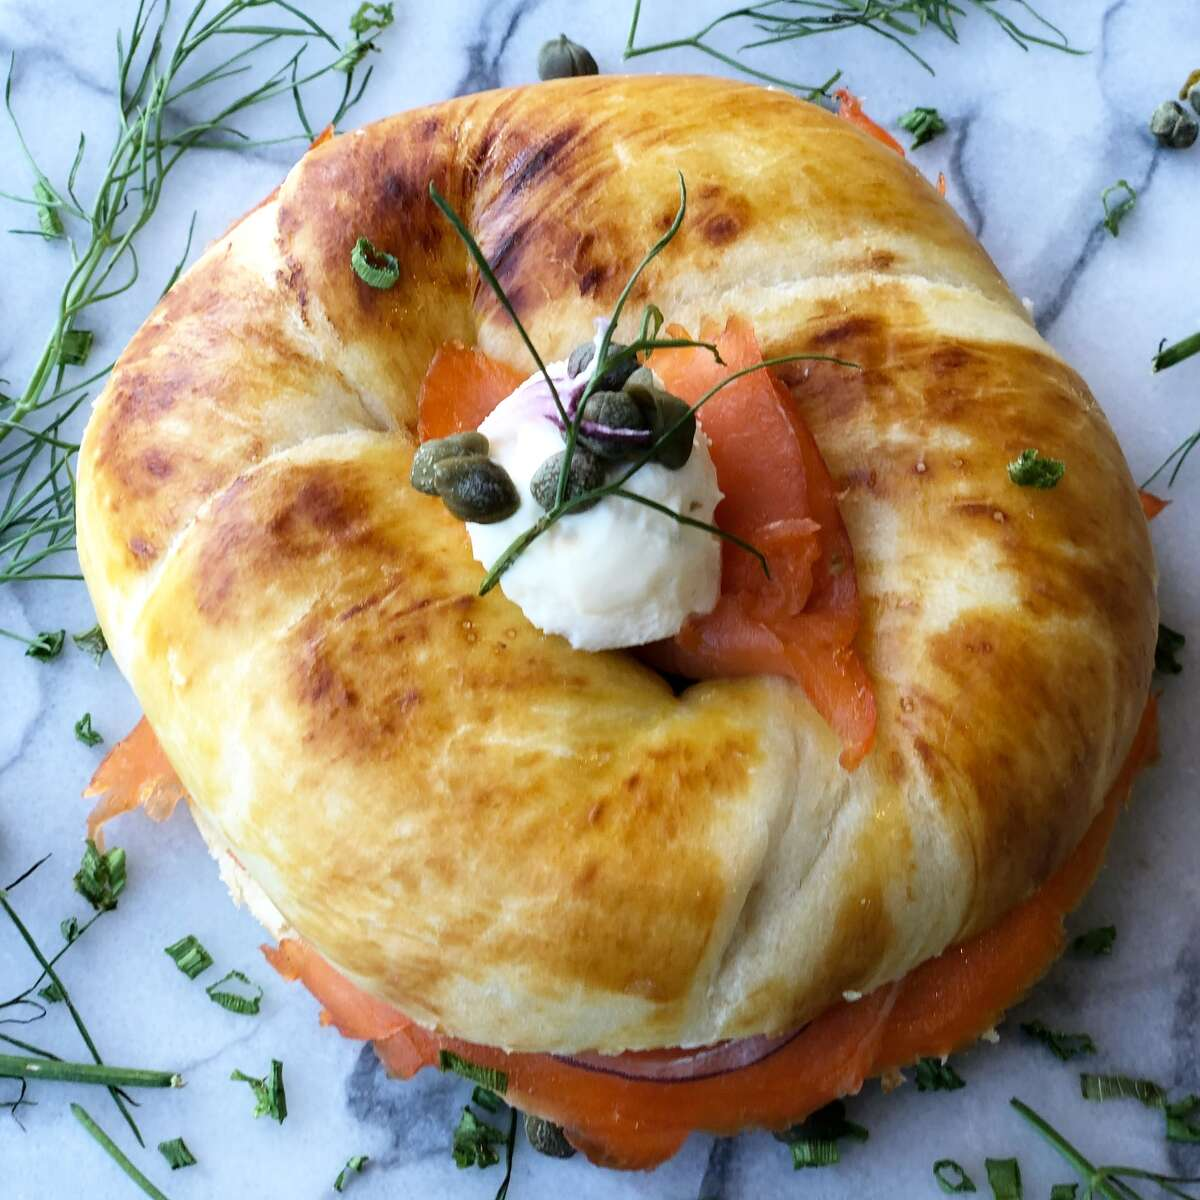 Smoked salmon simit at The Roastery Coffee Kitchen opening its second location in the new H-E-B in the Heights, 2300 N. Shepherd, on Jan. 30.